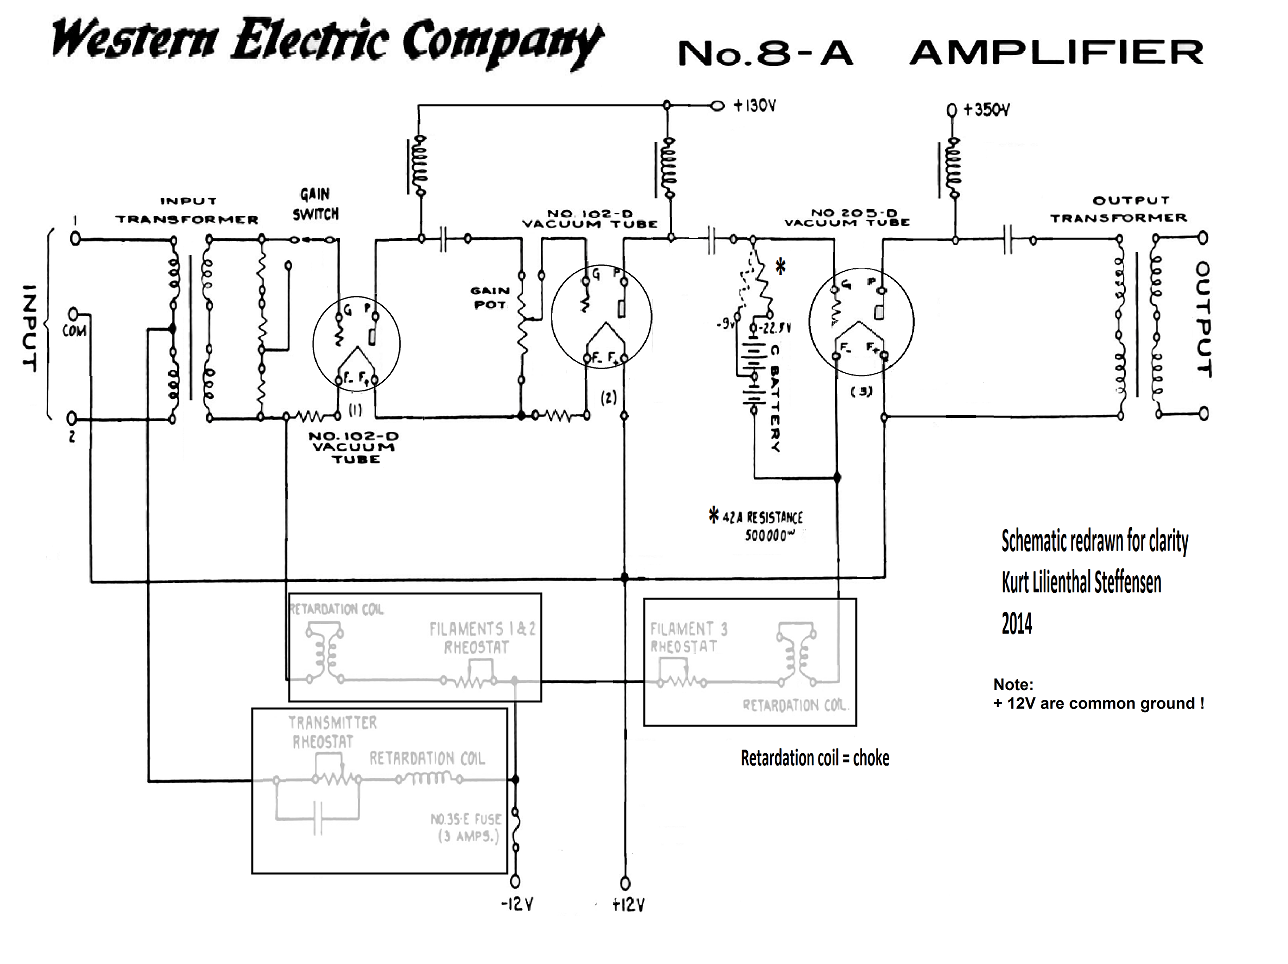 electrical schematic symbols#western electric 500 parts#telephone  circuit schematic#western handheld schematics#western electric 202 wiring